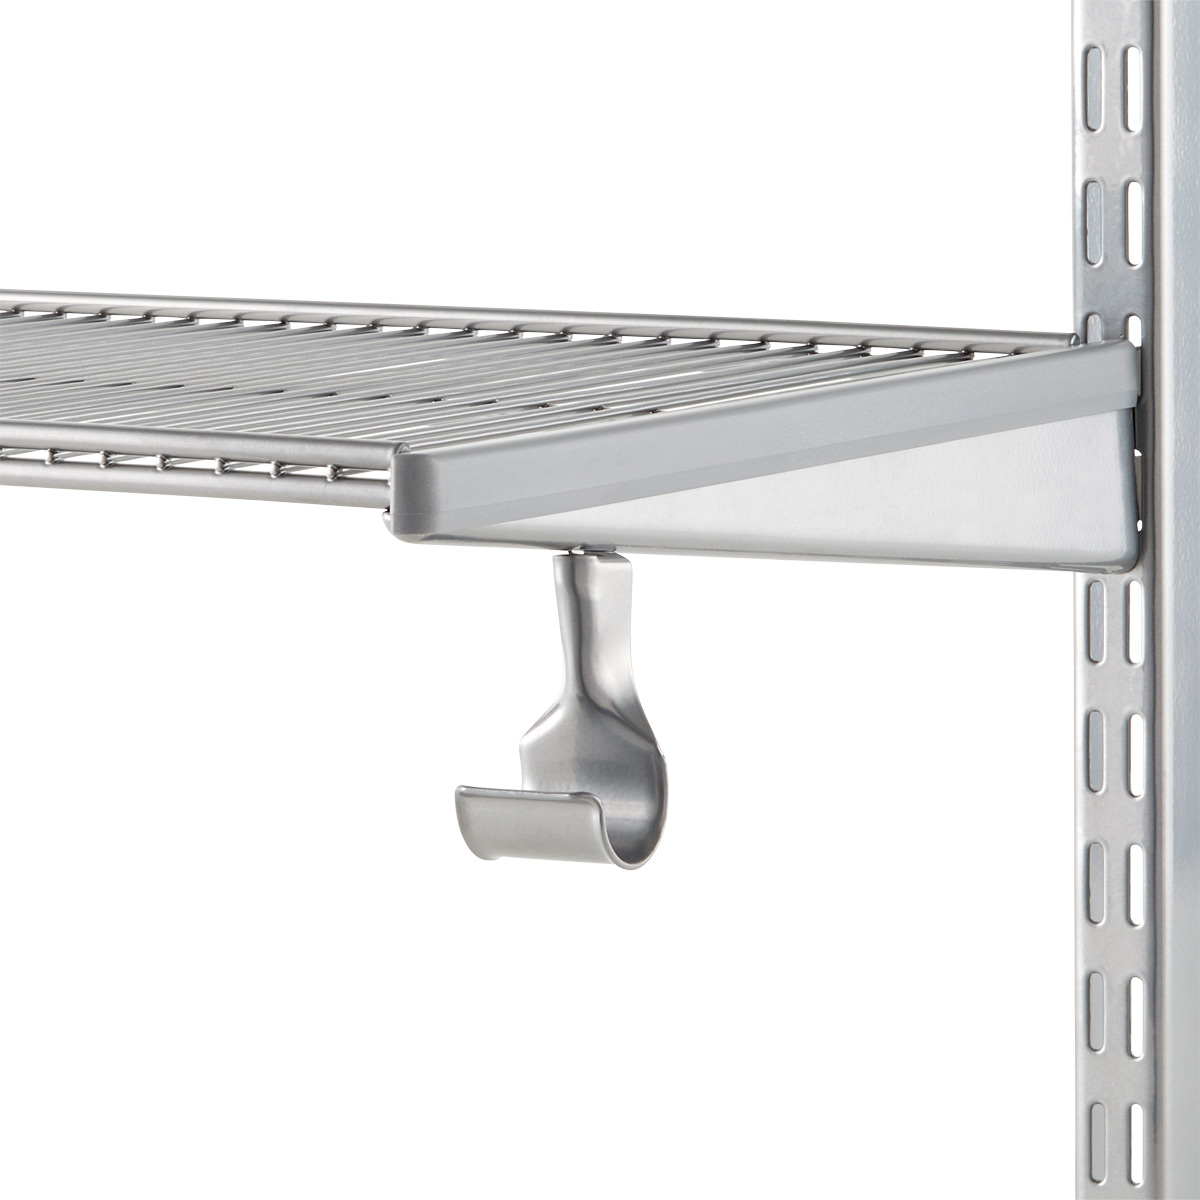 Platinum Elfa Closet Rod Holder The Container Store